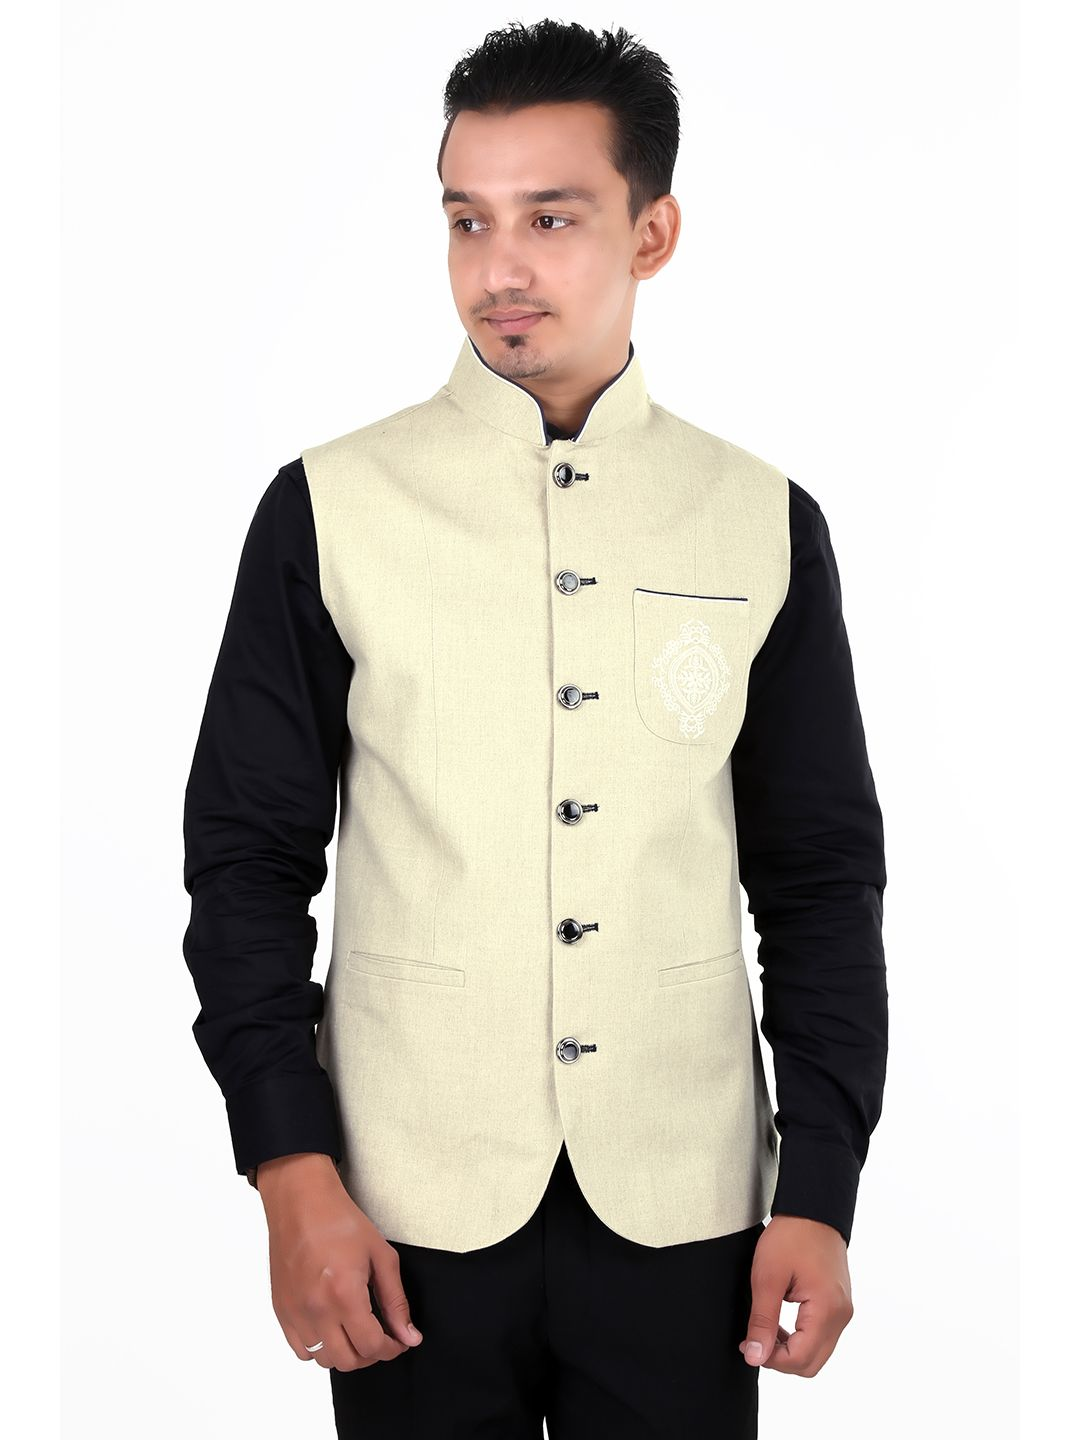 Xposed Beige Plain Linen Men Waistcoat. To View more collection at www.g3fashion.com  For price or detail do whatsApp +91-9913433322.  couture#gq #upclose #mensfashion #menstyle #menswear #menwhodress #menwithclass #instafashion #highfashion #dandys #dandystyle #dapper # #streetstyle #streetwear #stylegram #styleguide #gentlemanstyle #personalstyle #breakingbad  #ootd #waistcoat l #satorialist #shoegame #onfleek.